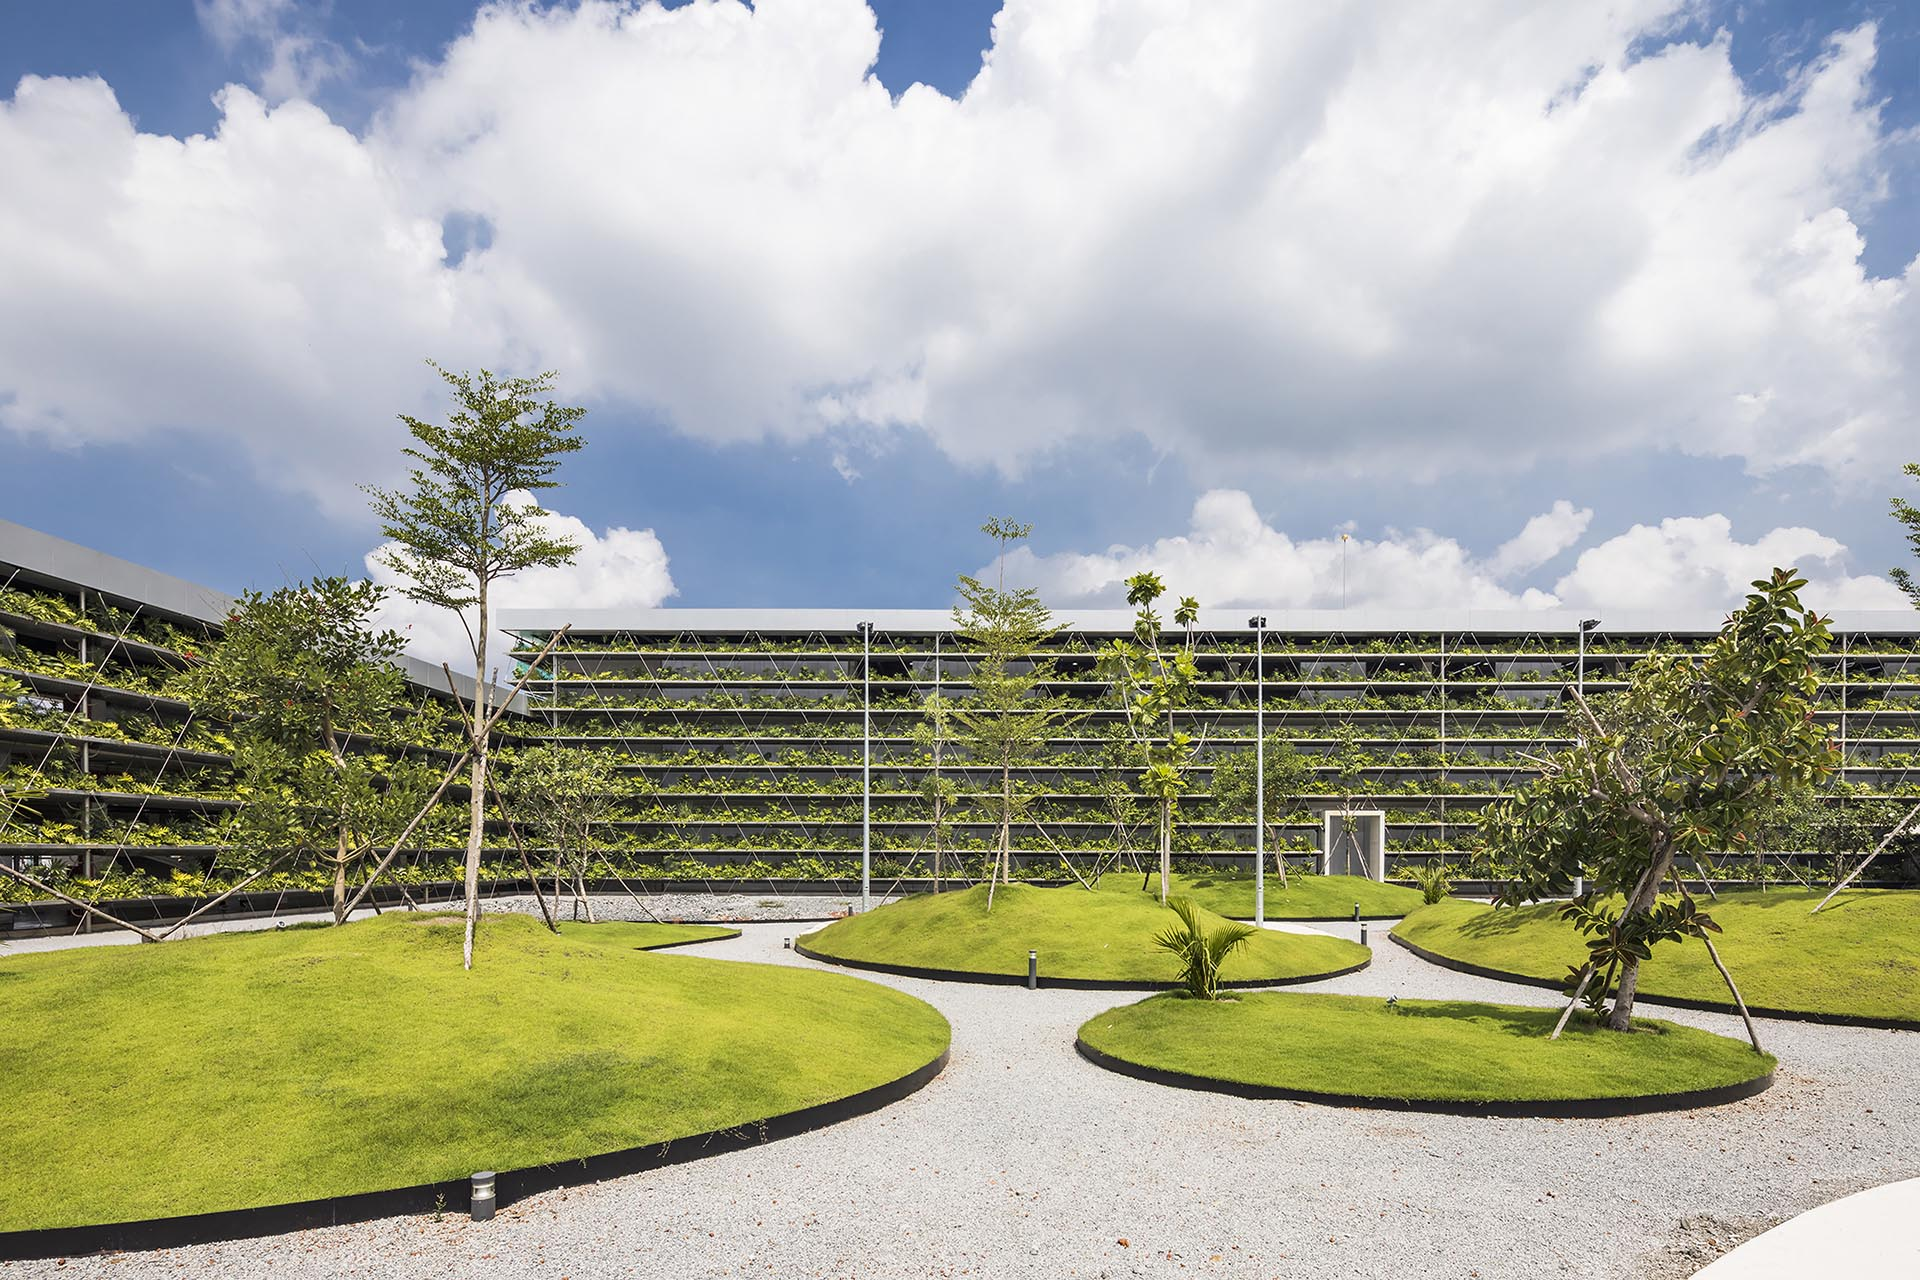 A central courtyard with grassy patches and trees.